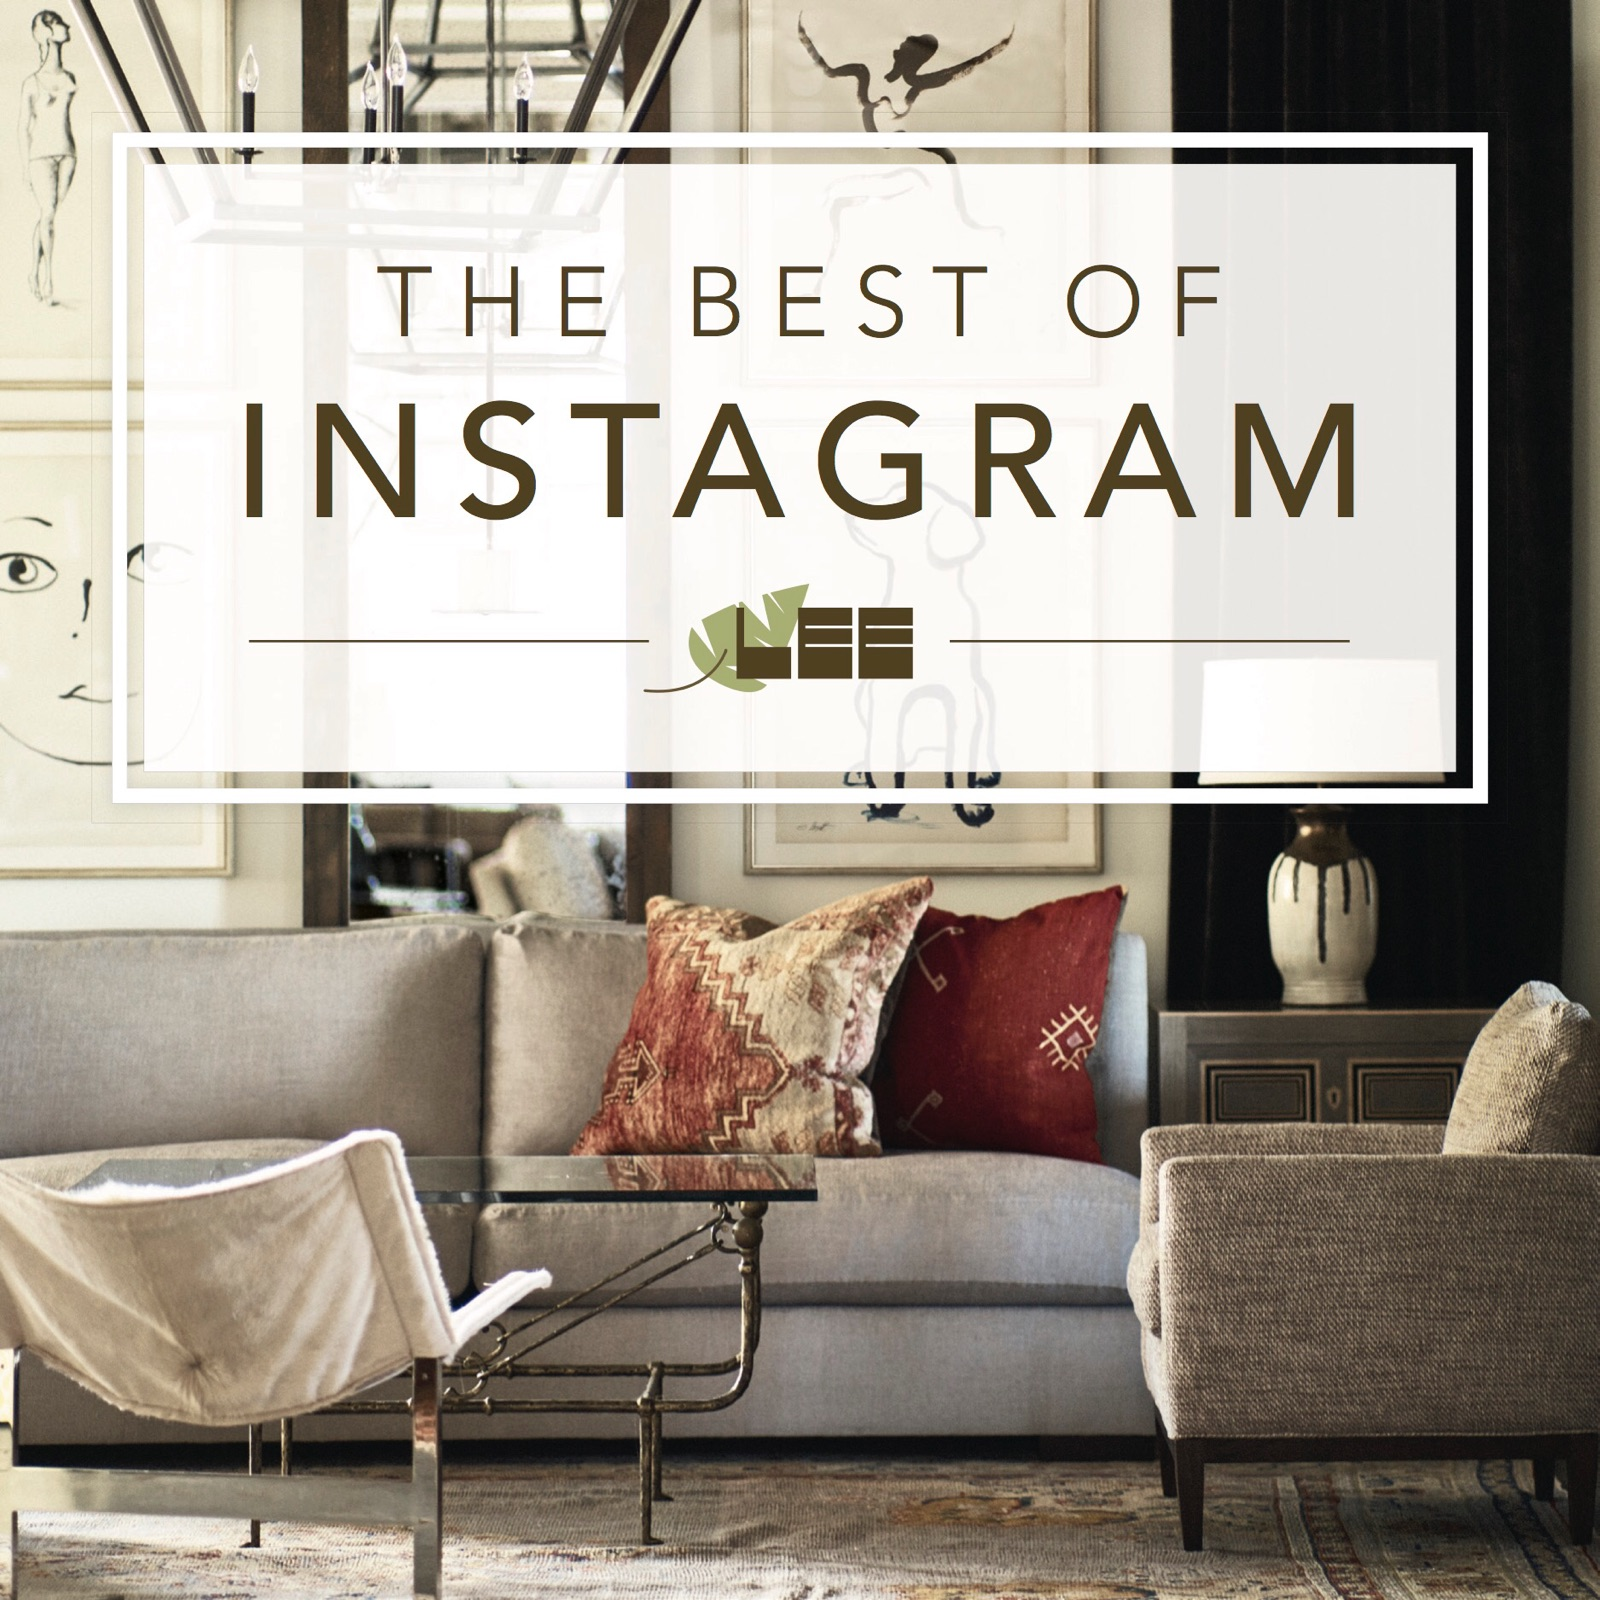 So excited to be included in the LEE Industries 'Best of Instagram 2017'